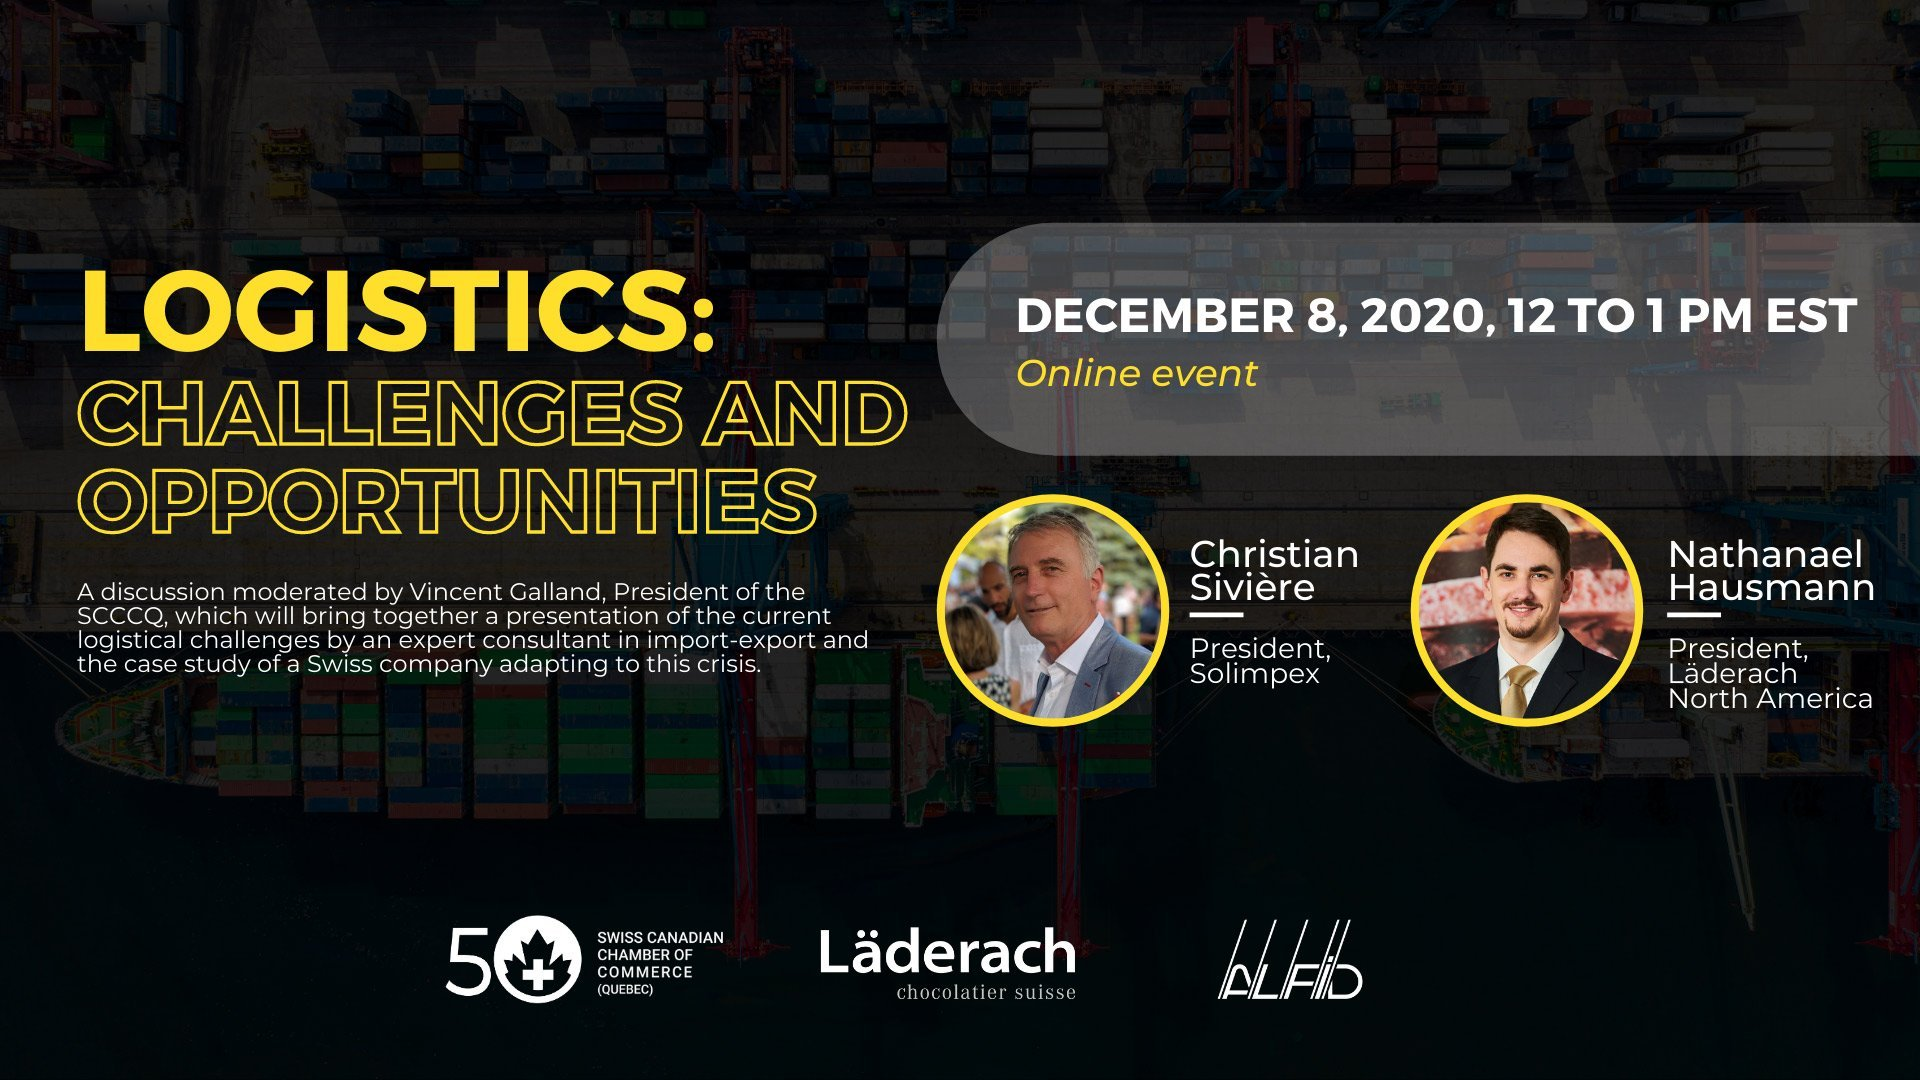 Logistics: Challenges and Opportunities